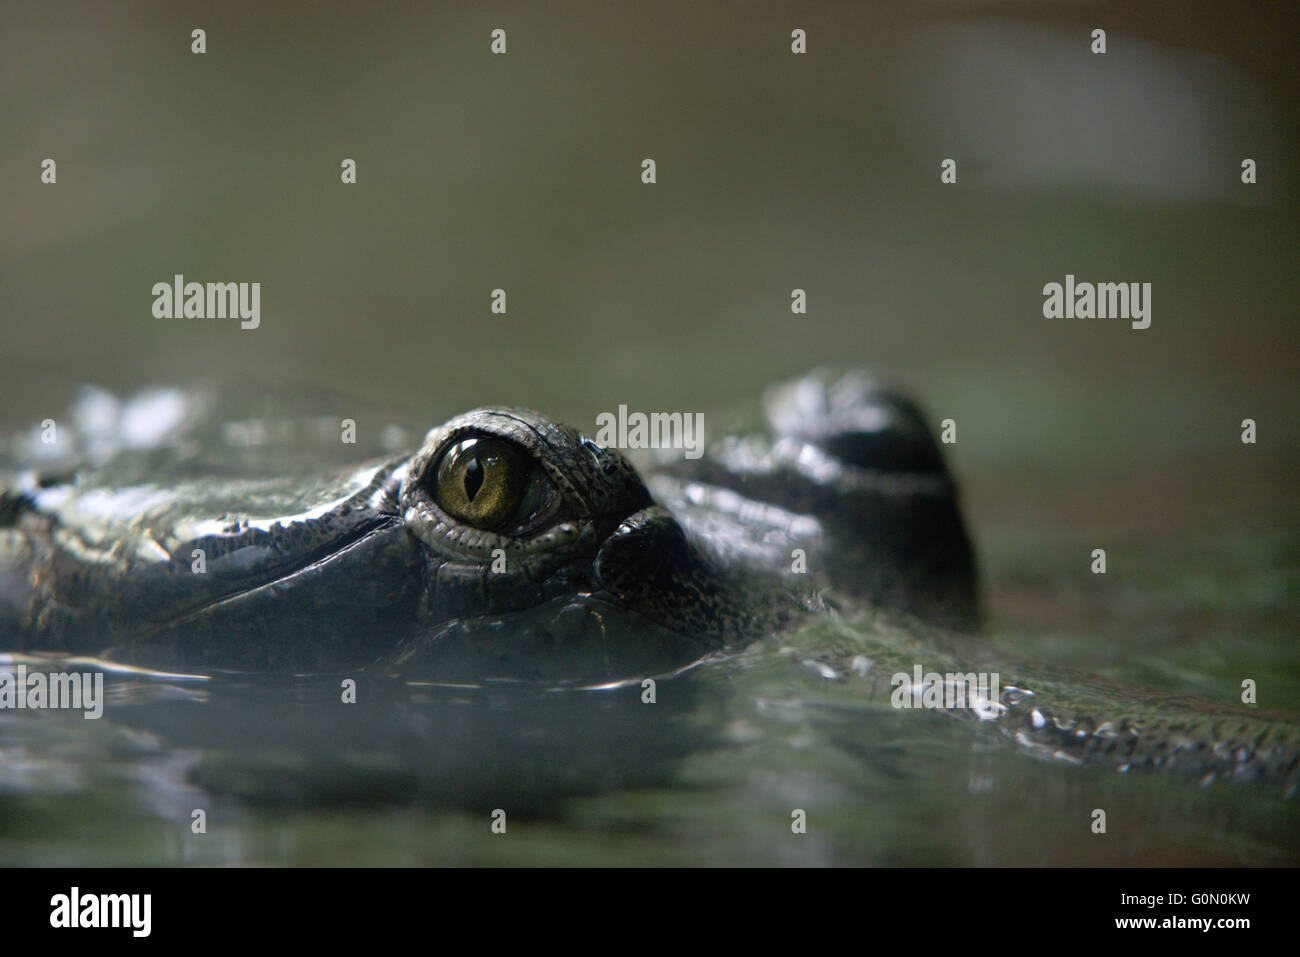 eye of crocodile in prague zoo in czech republic stock image